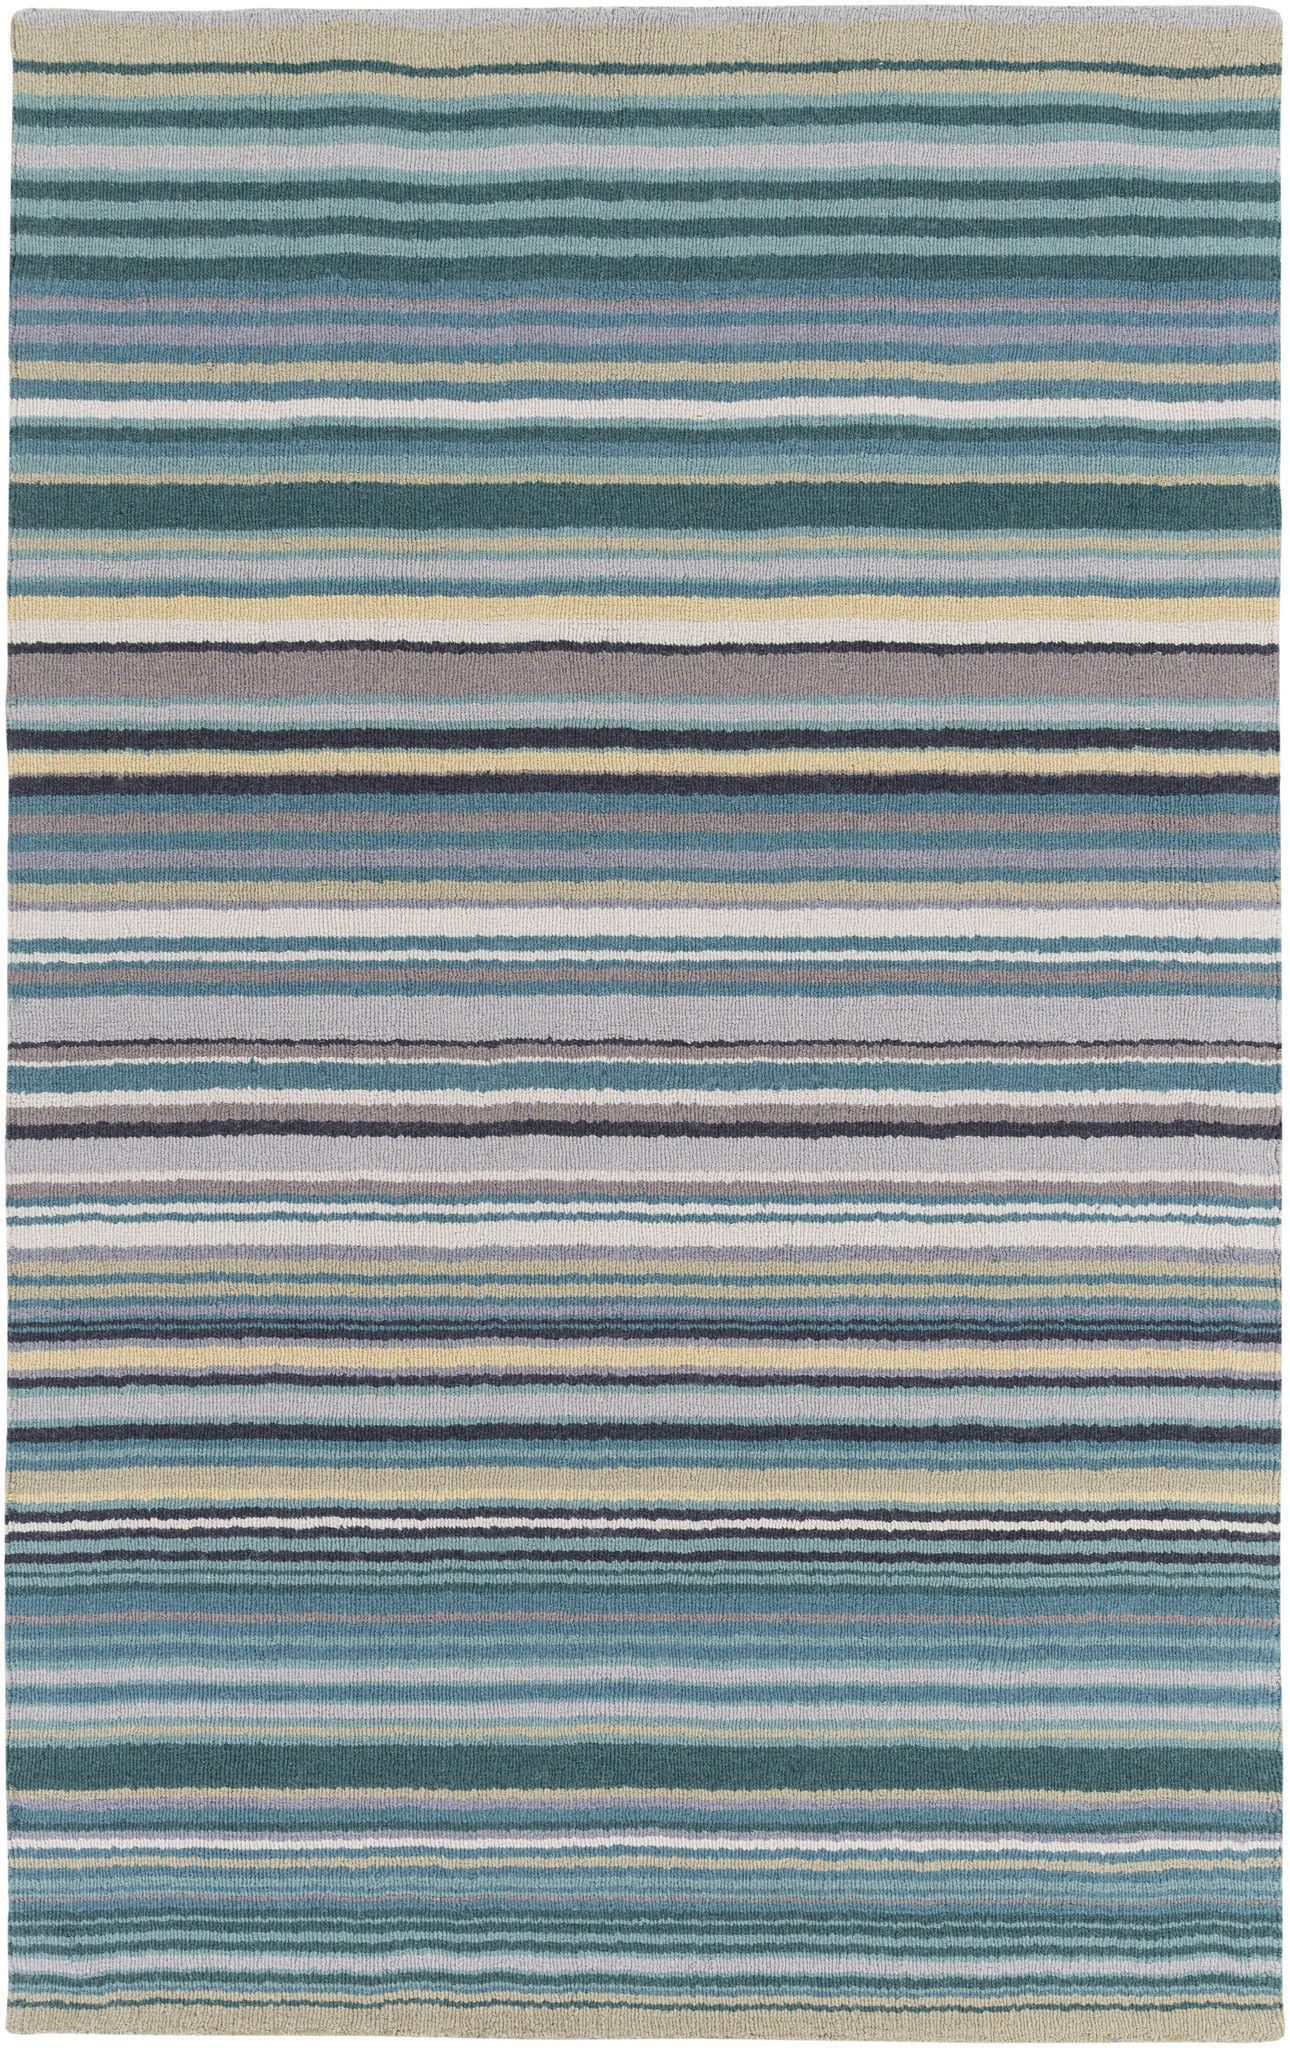 Surya Blowout Sale Up To 70 Off M5419 23 Mystique Stripes Area Rug Blue Green Only Only 77 40 Blue Area Rugs Wool Area Rugs Area Rugs